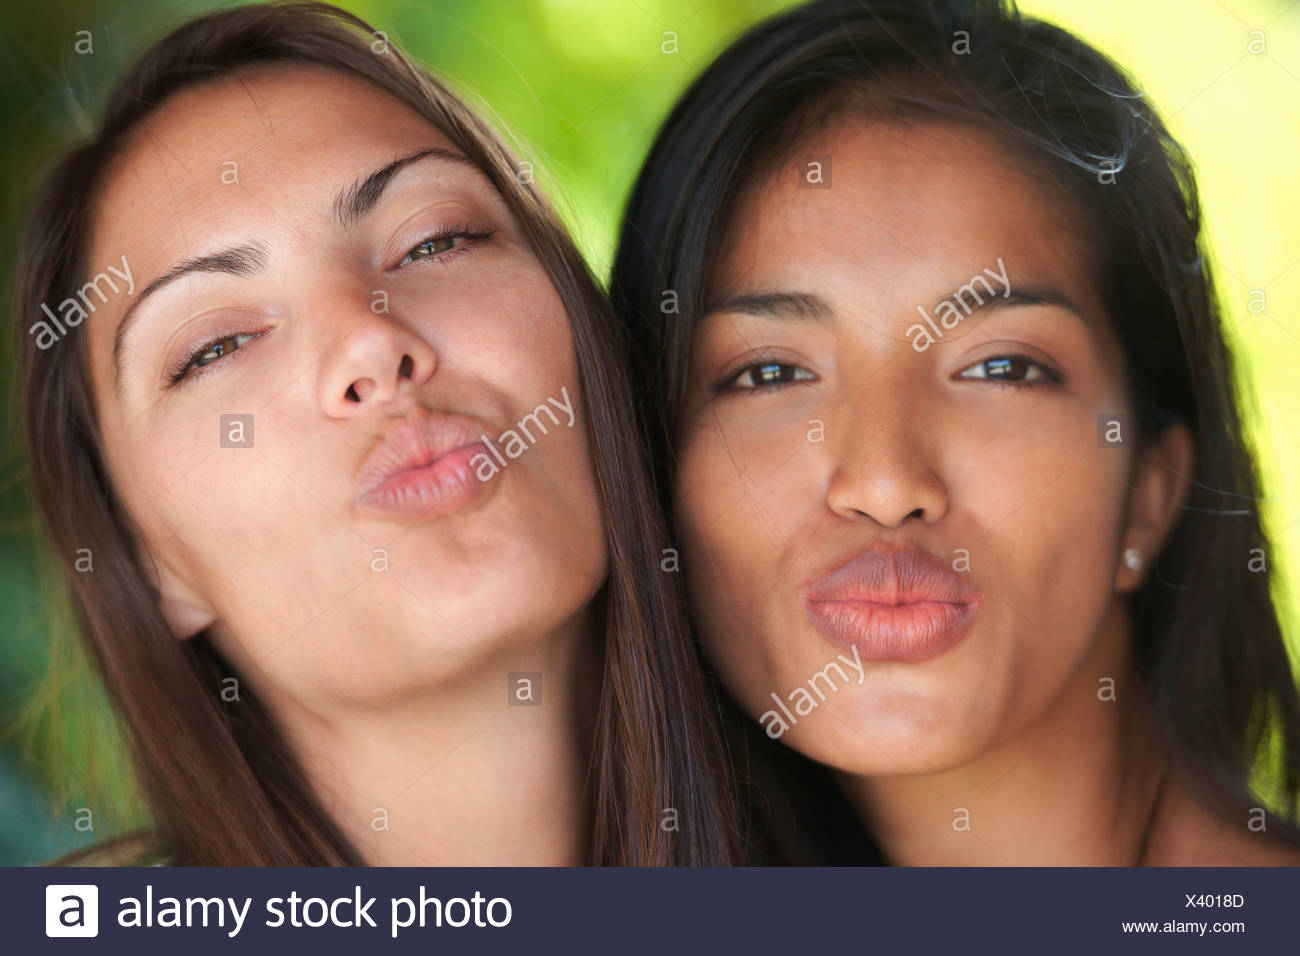 Close up portrait of two woman friends puckering lips - Stock Image